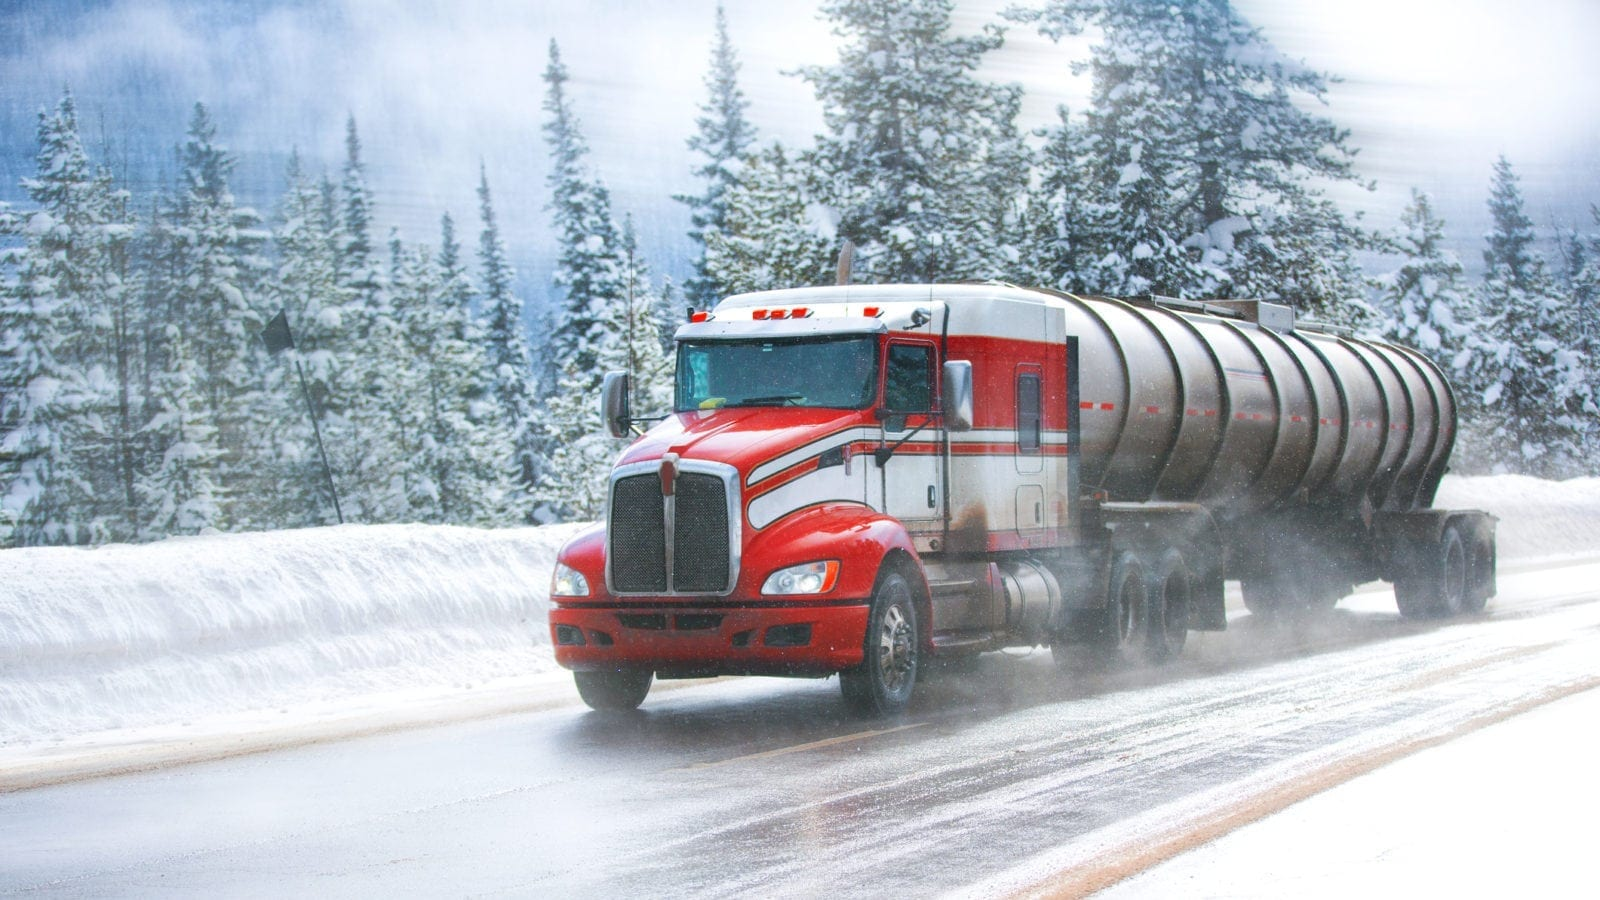 Large Semi-truck Driving On An Icy Road Stock Photo